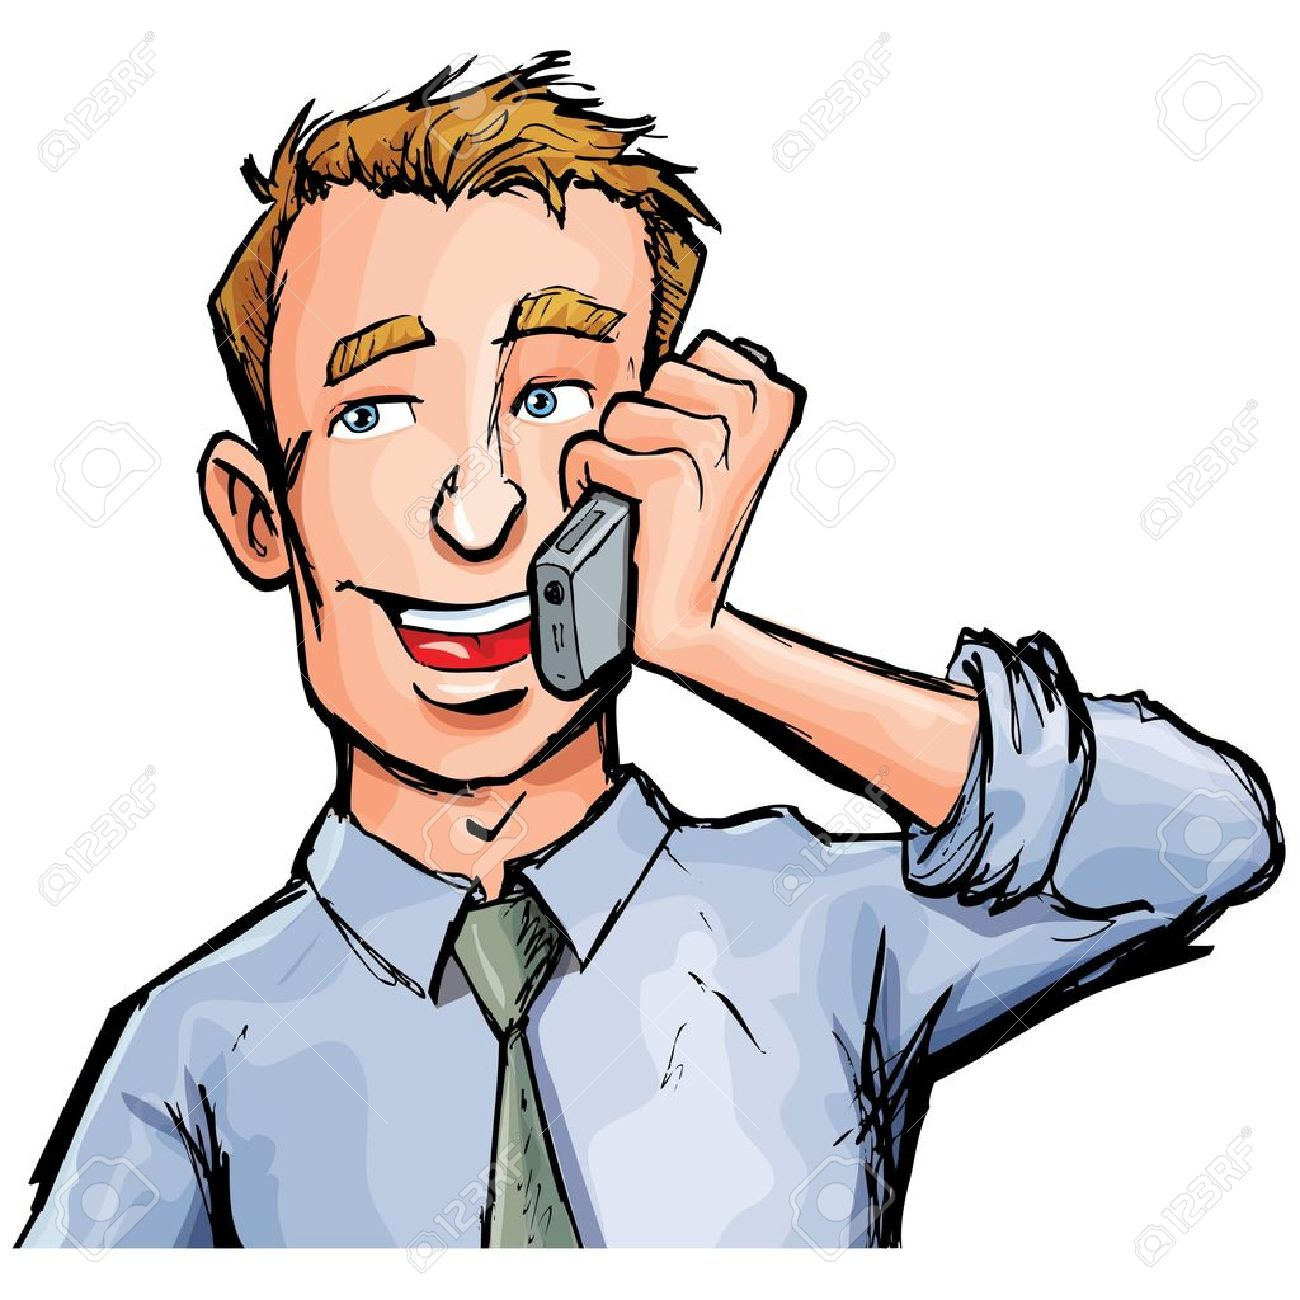 cartoon office worker on the phone he is smiling royalty free rh 123rf com person on phone clipart person answering phone clip art